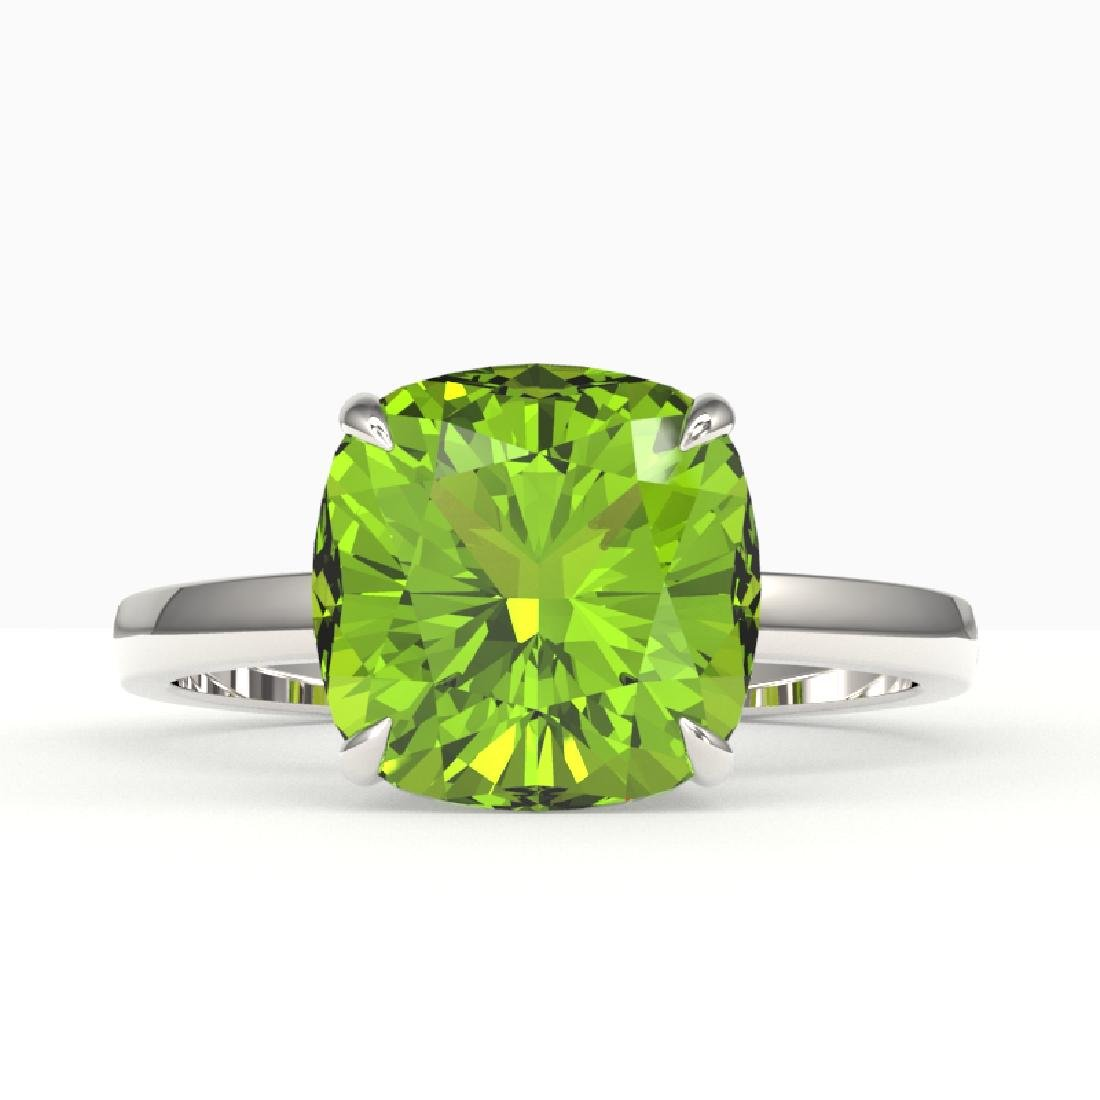 6 CTW Cushion Cut Peridot Designer Inspired Solitaire